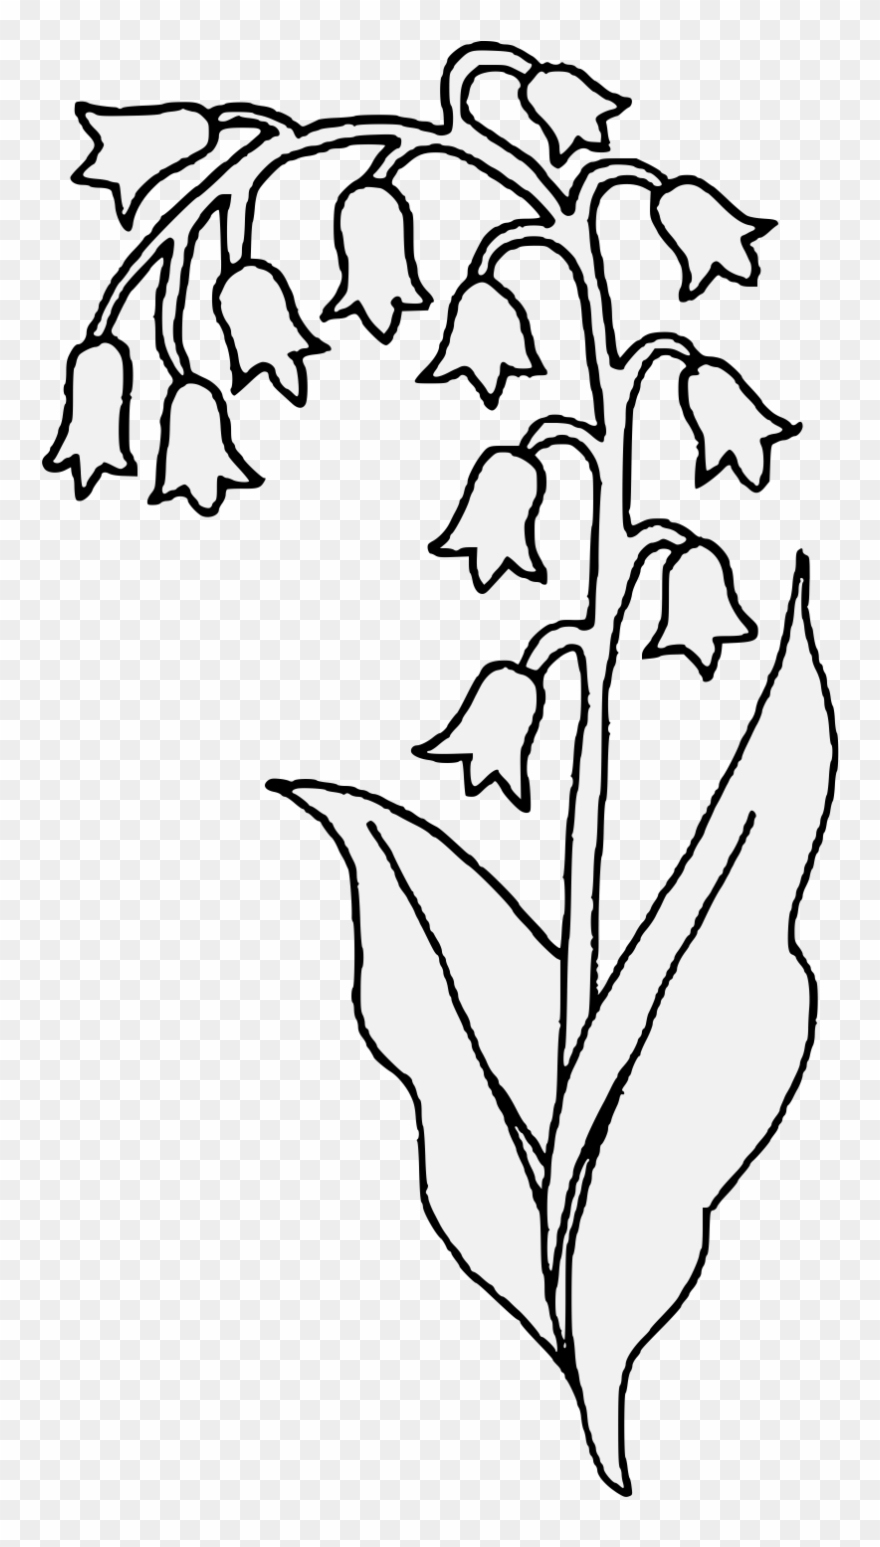 Black and white valley clipart clip art royalty free library Lily Of The Valley Clipart Transparent - Lilies Of The Valley Sketch ... clip art royalty free library